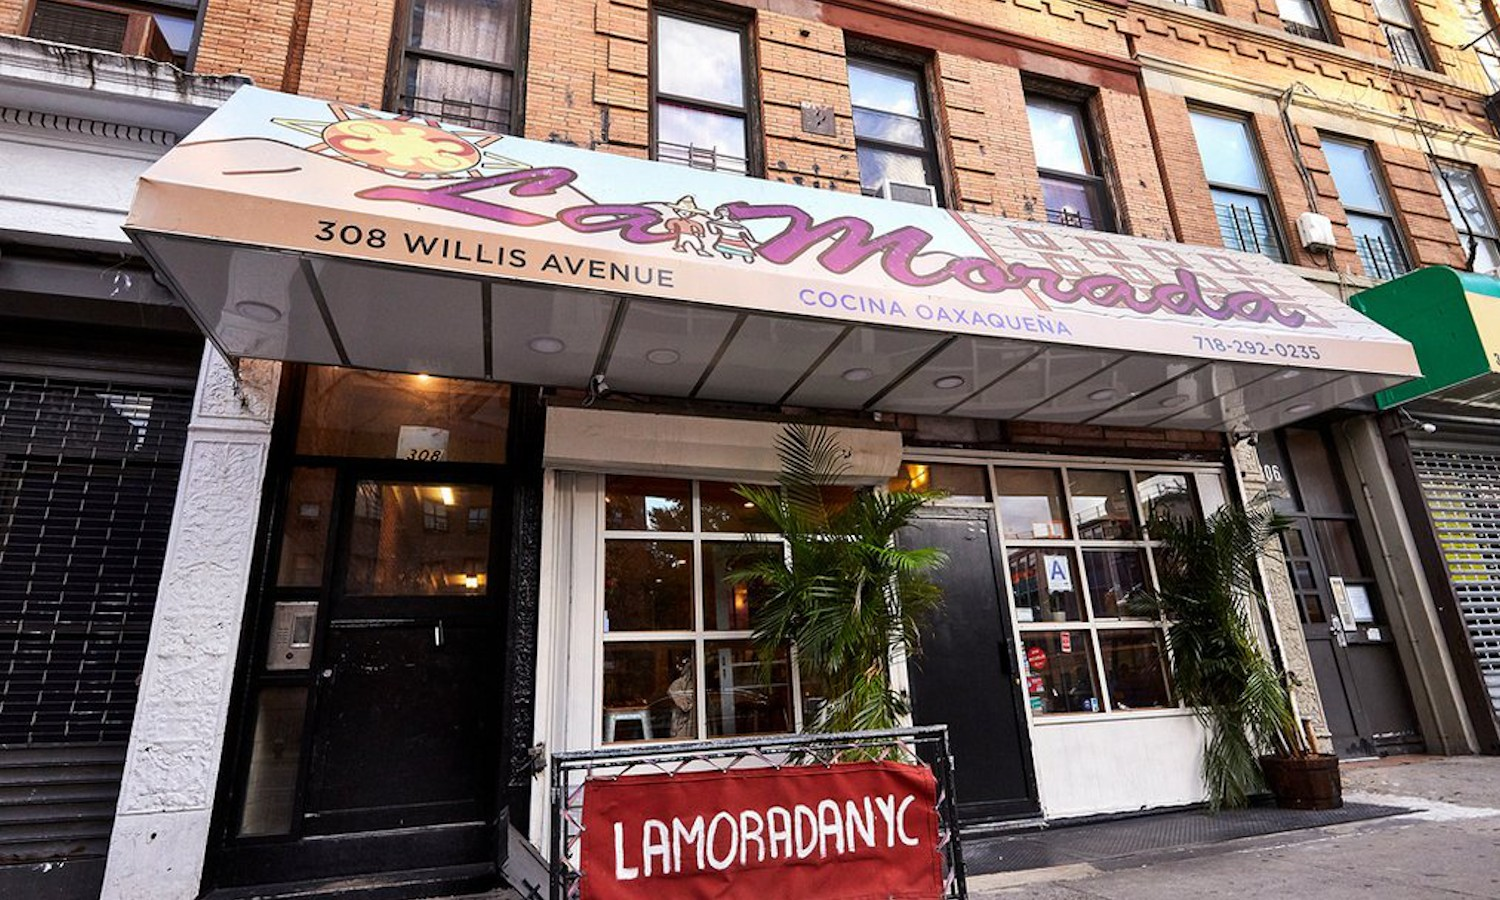 La Morada, a Mexican restaurant in the Bronx, is feeding their community while advocating for immigrants and other marginalized groups.